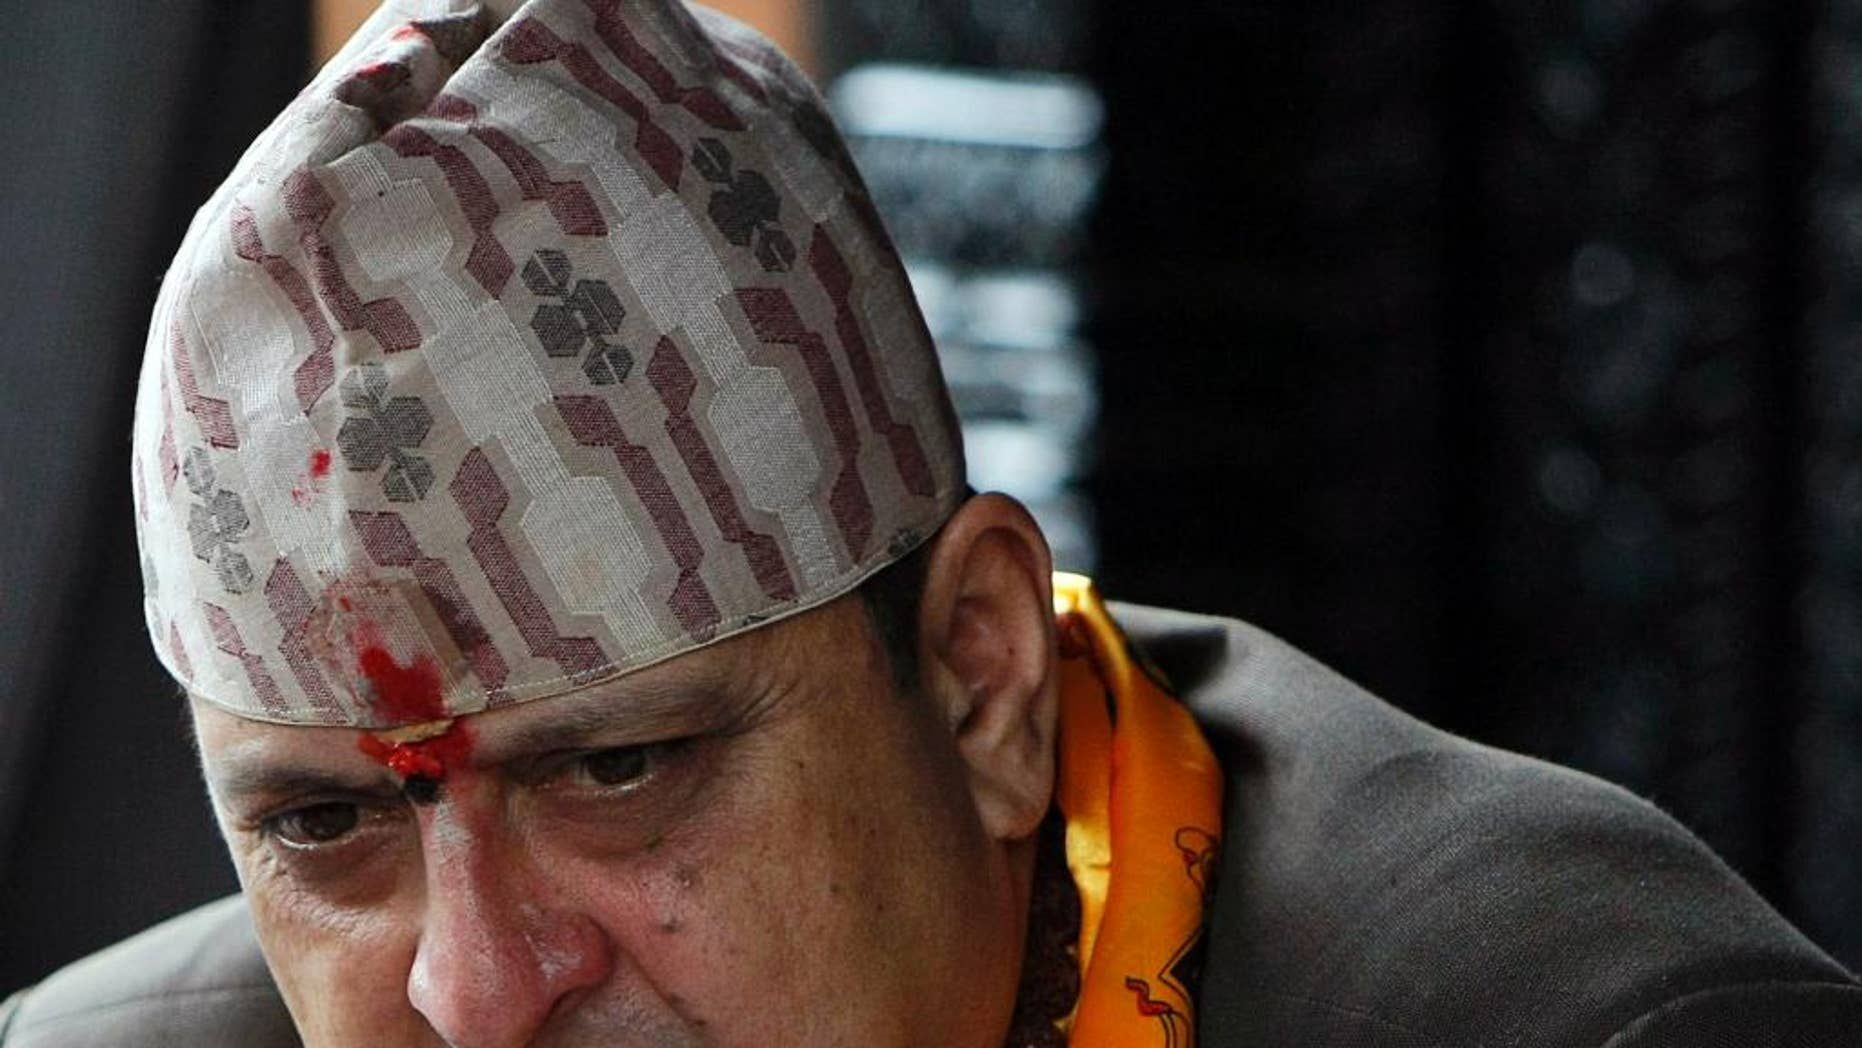 FILE - In this July 7, 2011 file photo, Nepal's former King Gyanendra listens to a supporter on his 64th birthday at his residence in Katmandu, Nepal. The last king of Nepal is in stable condition in a hospital after suffering a heart attack, doctors said Sunday, Sept. 21, 2014. (AP Photo/Binod Joshi)